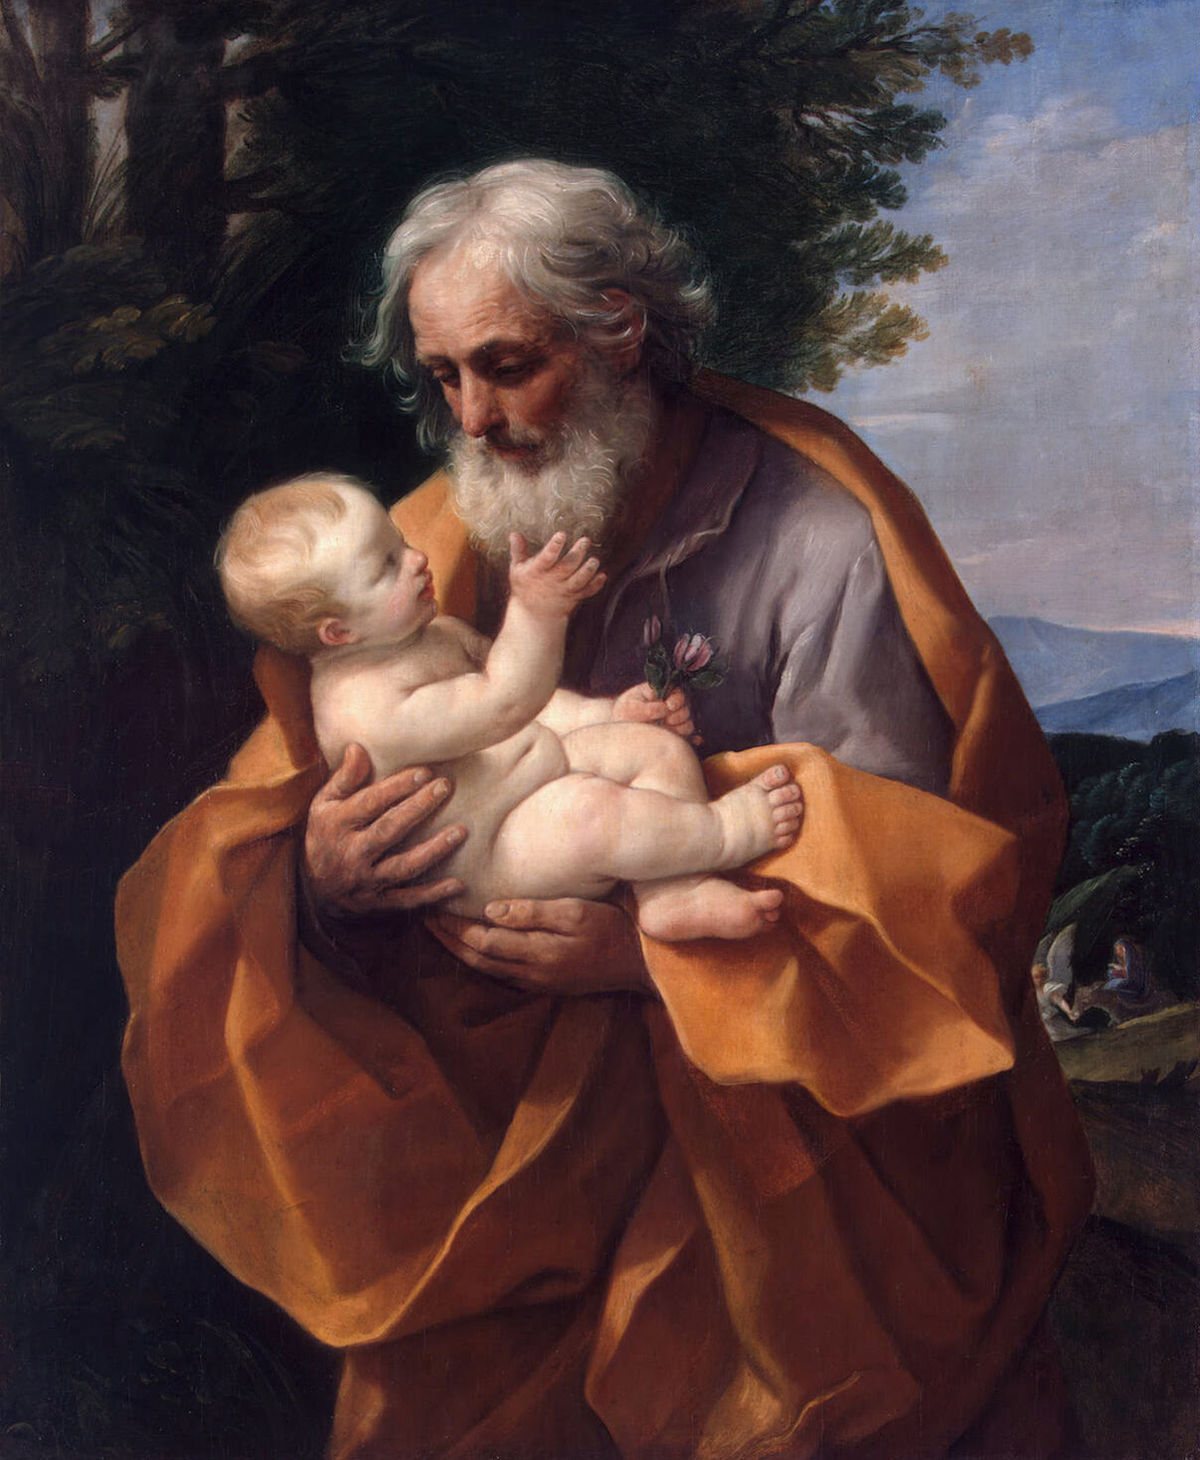 Saint Josephs Day Wikipedia